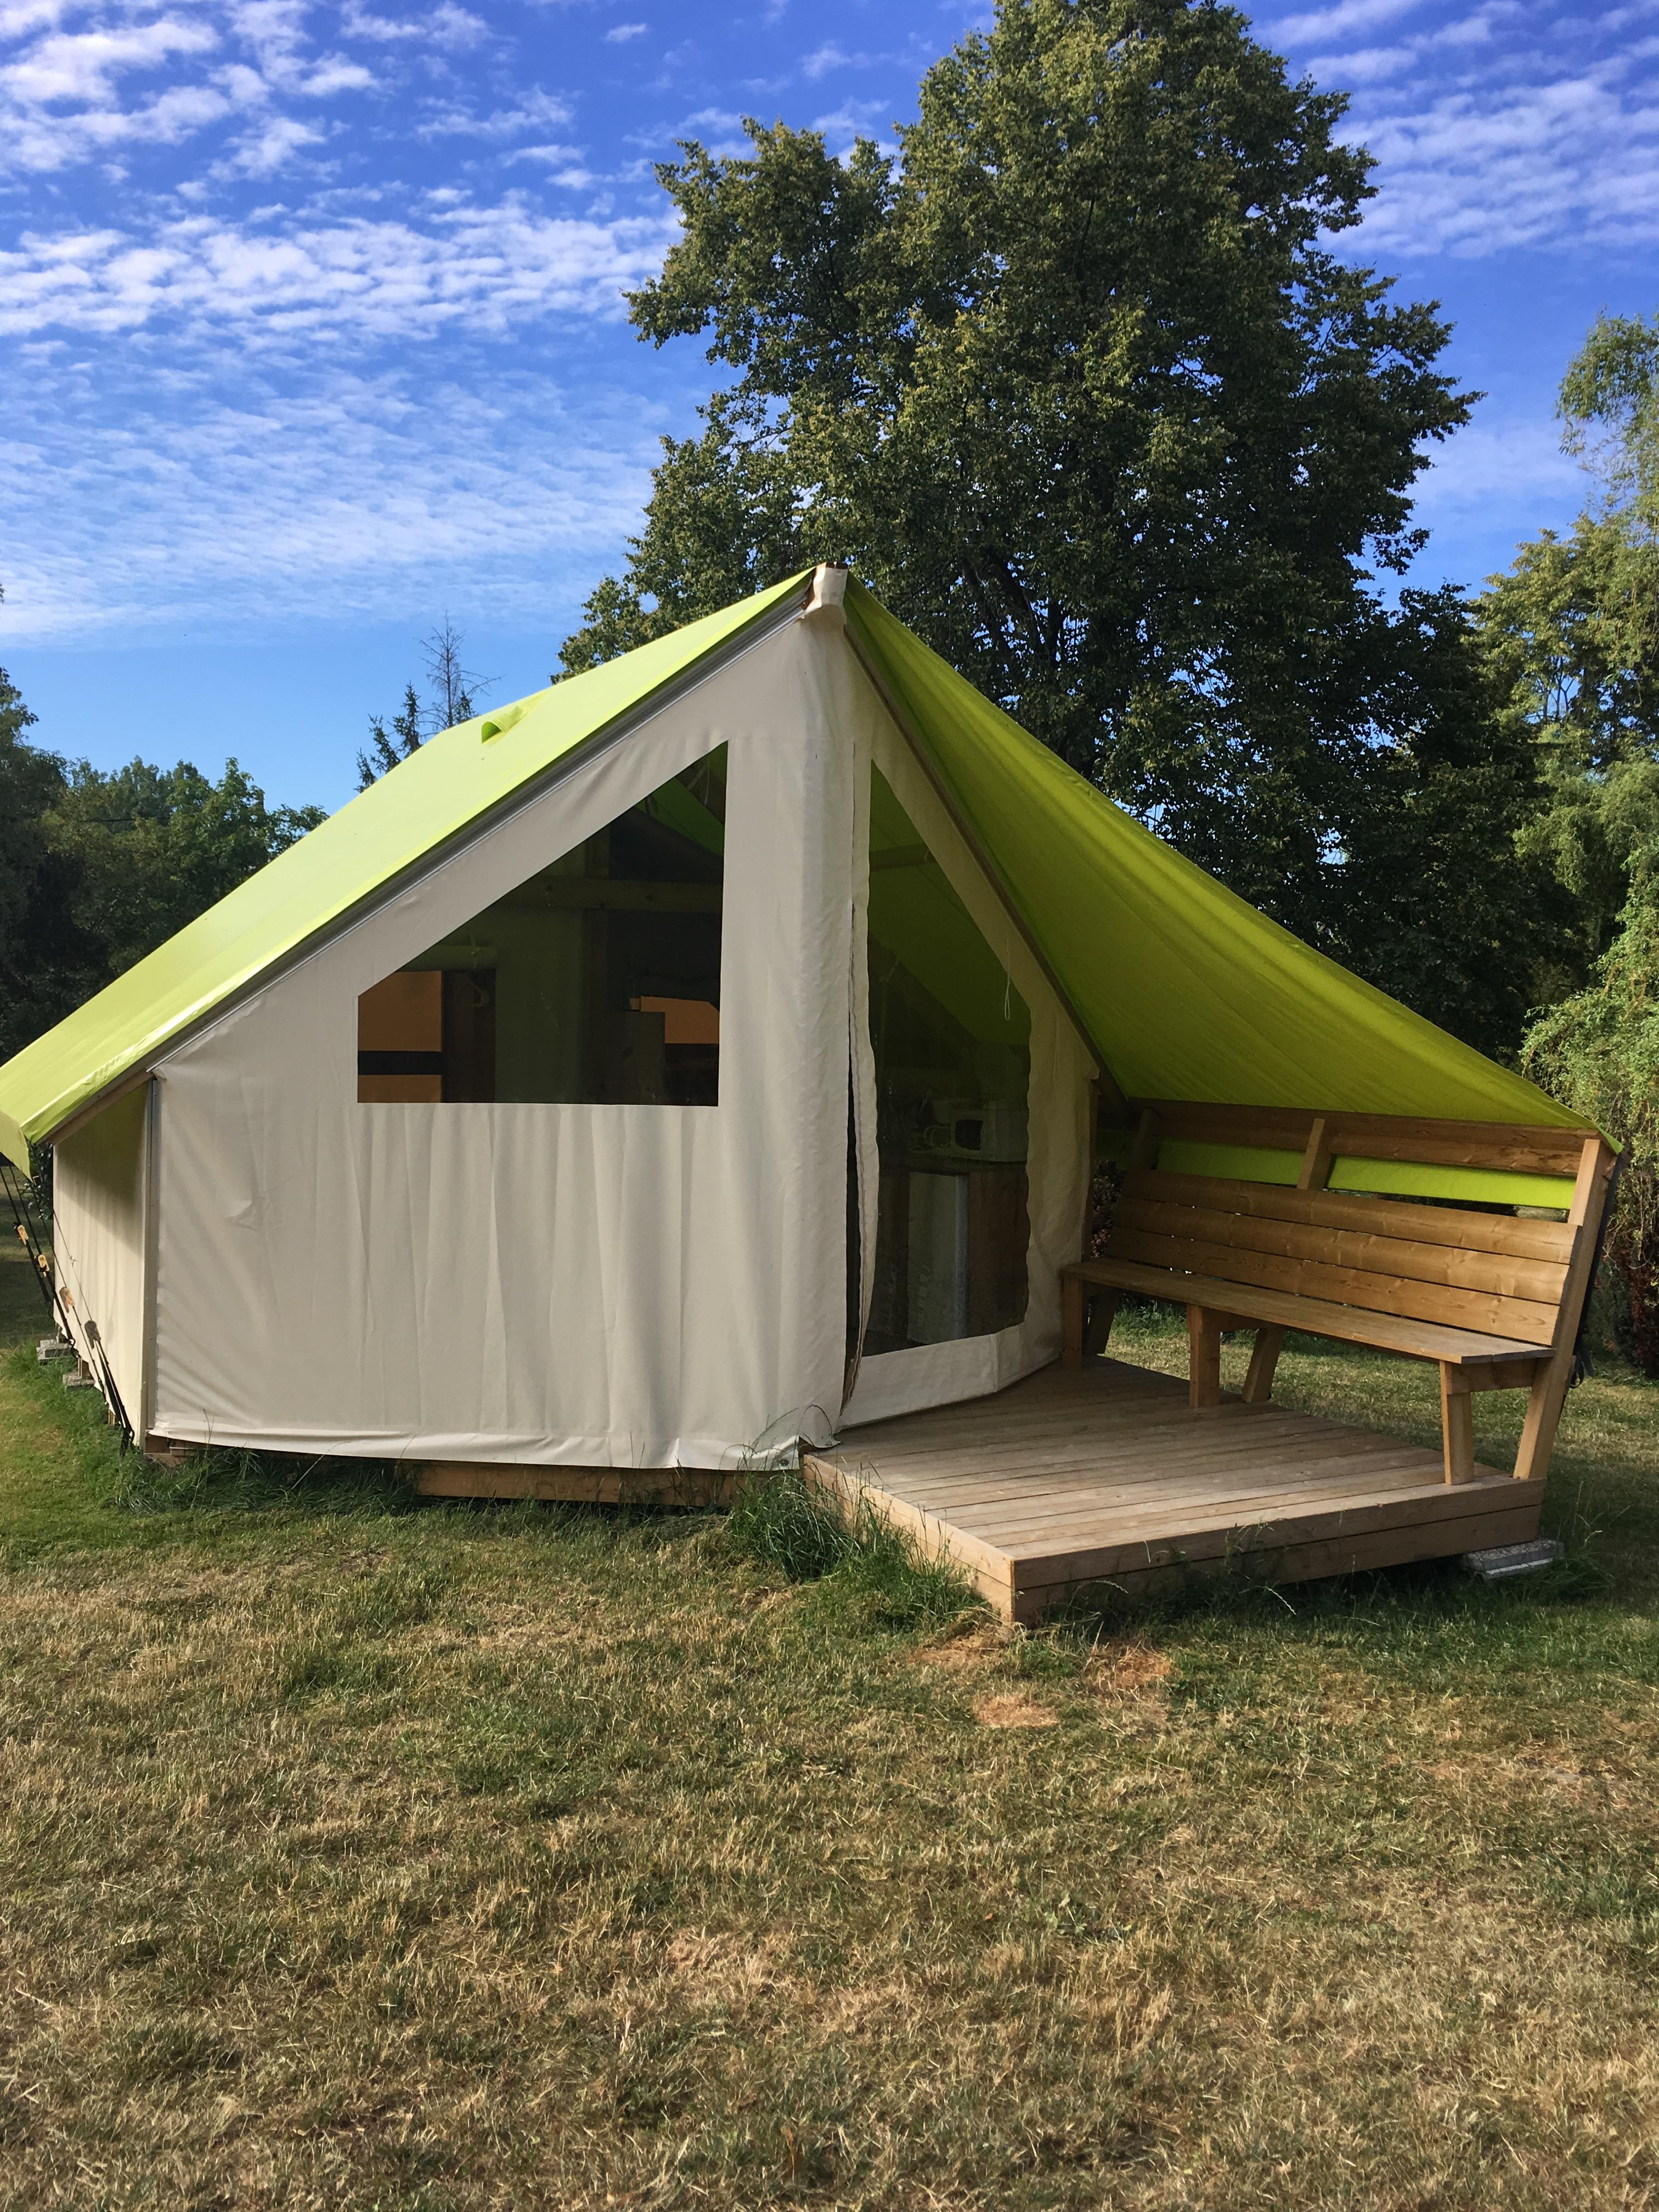 Alojamiento - Junior Ecolodge - 2 Bedrooms (Without Private Bathroom) - Camping Les Portes d'Alsace